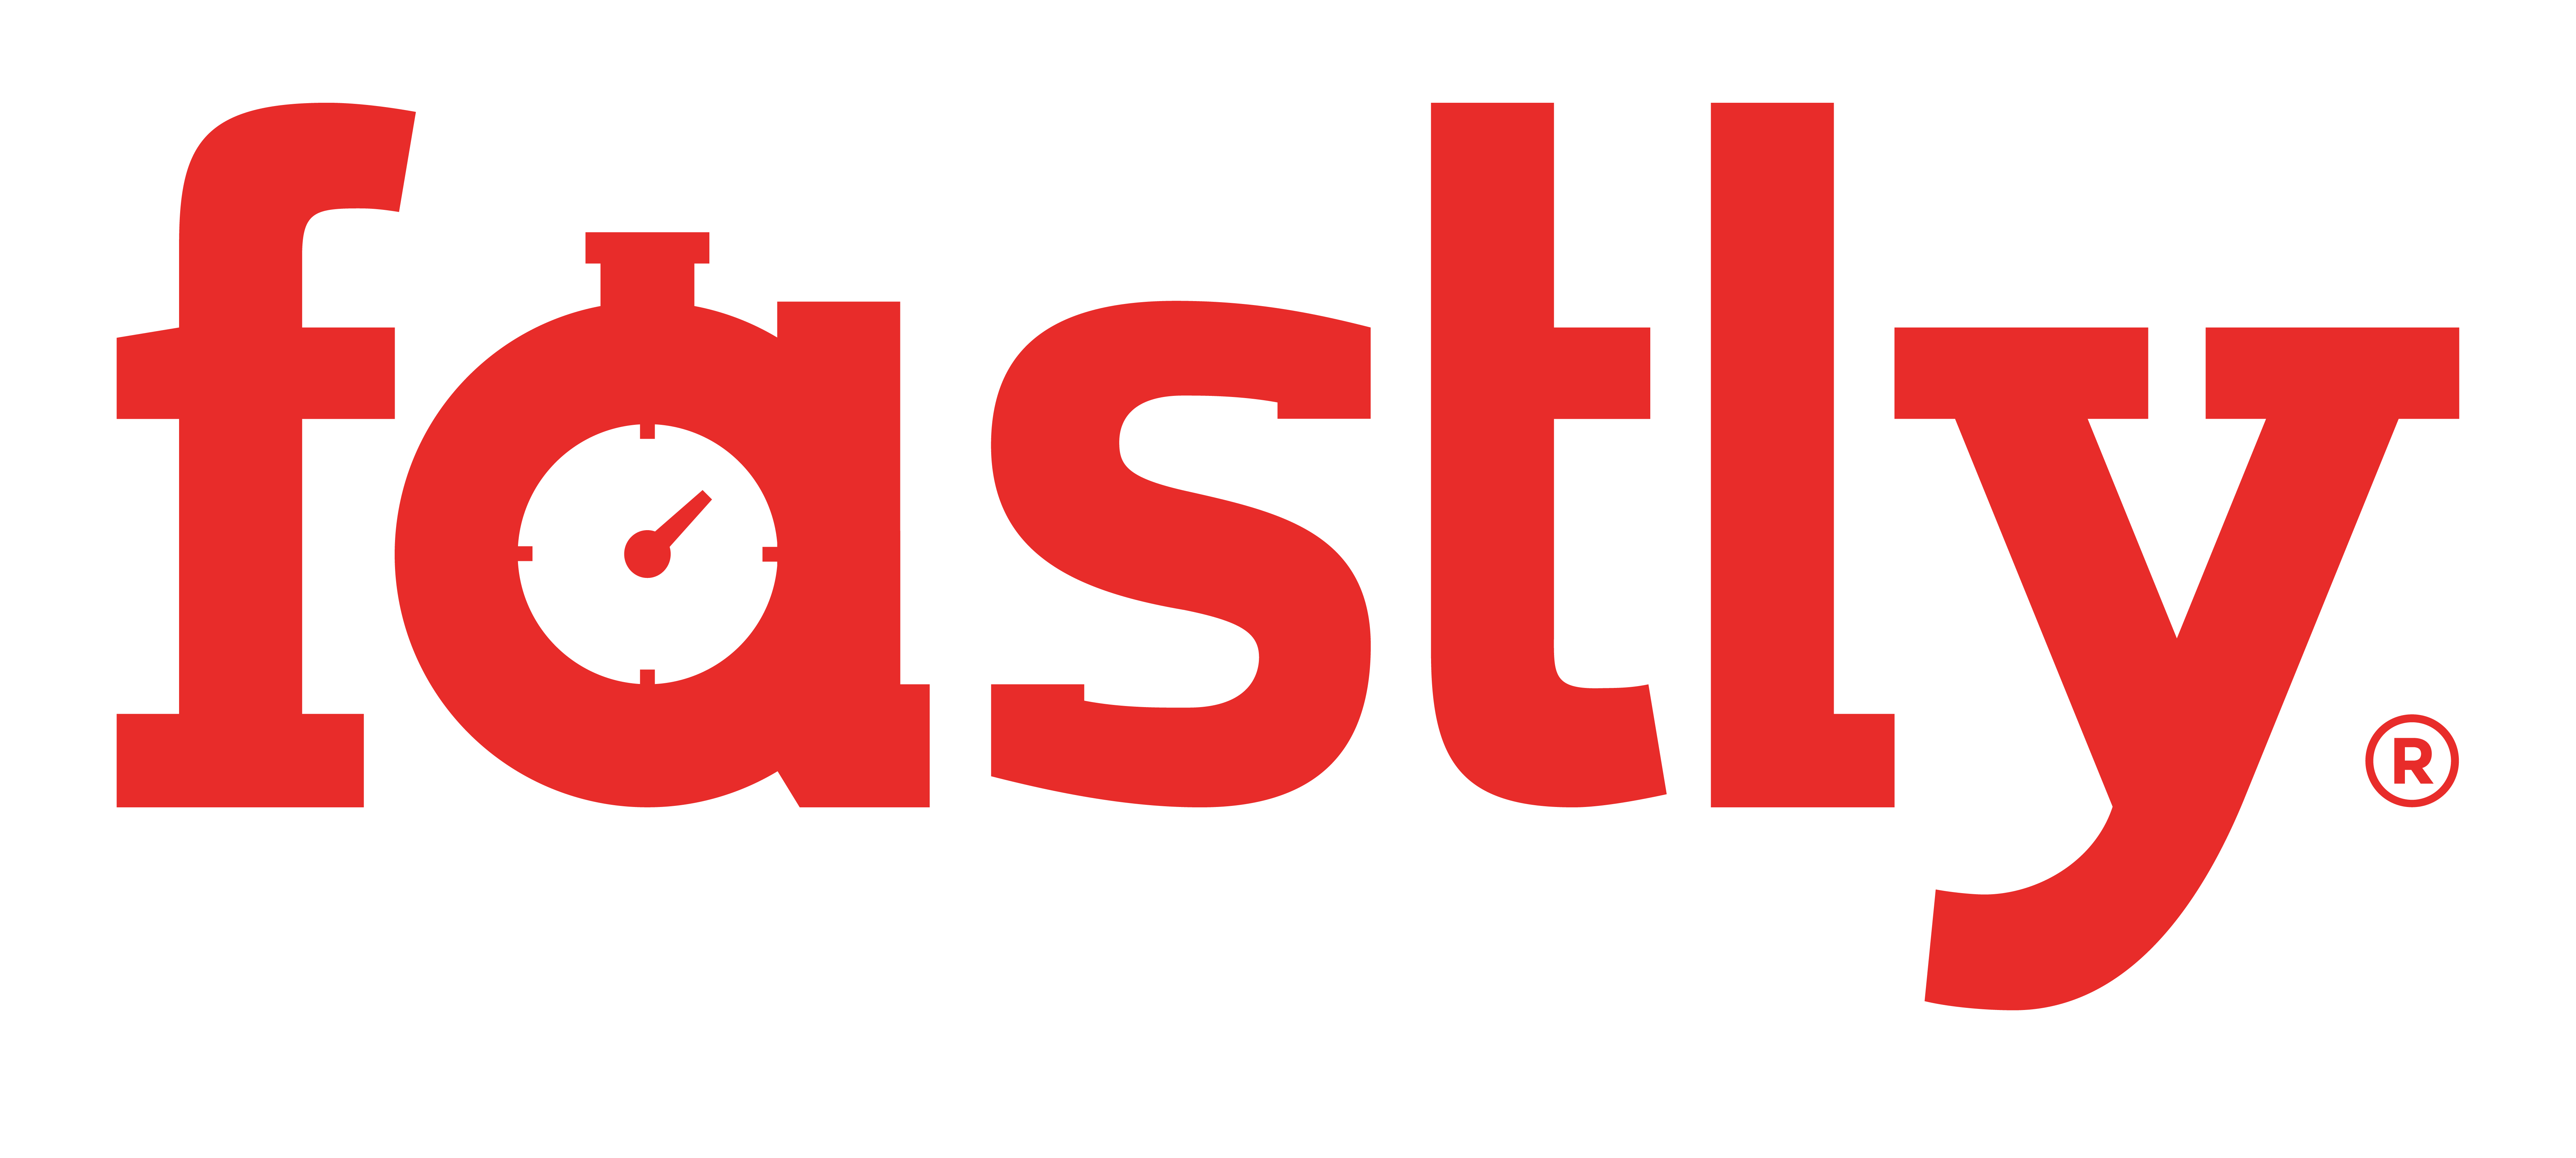 Powered by Fastly